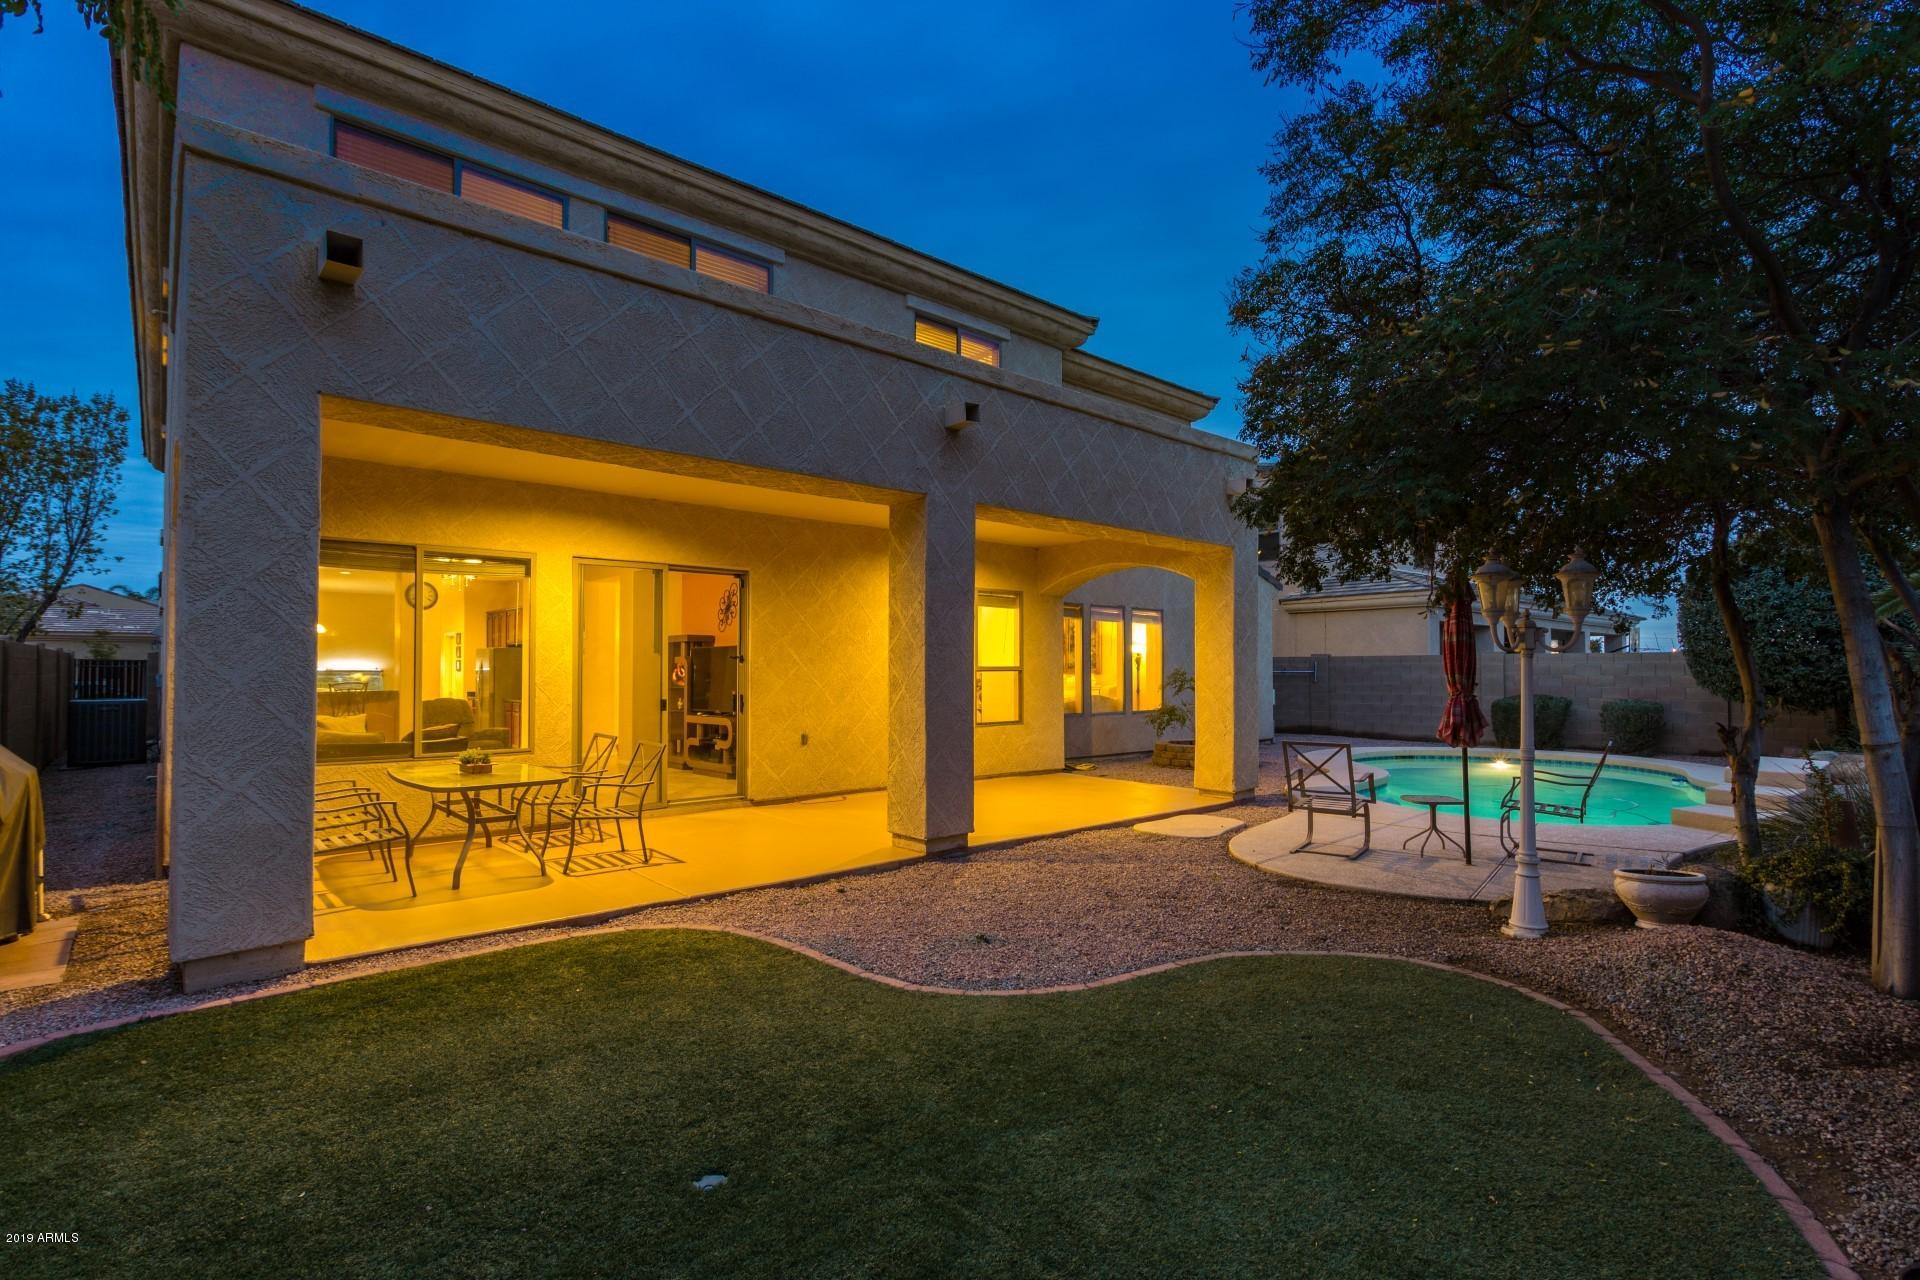 MLS 5884363 2704 S FOUR PEAKS Way, Chandler, AZ 85286 Paseo Trail